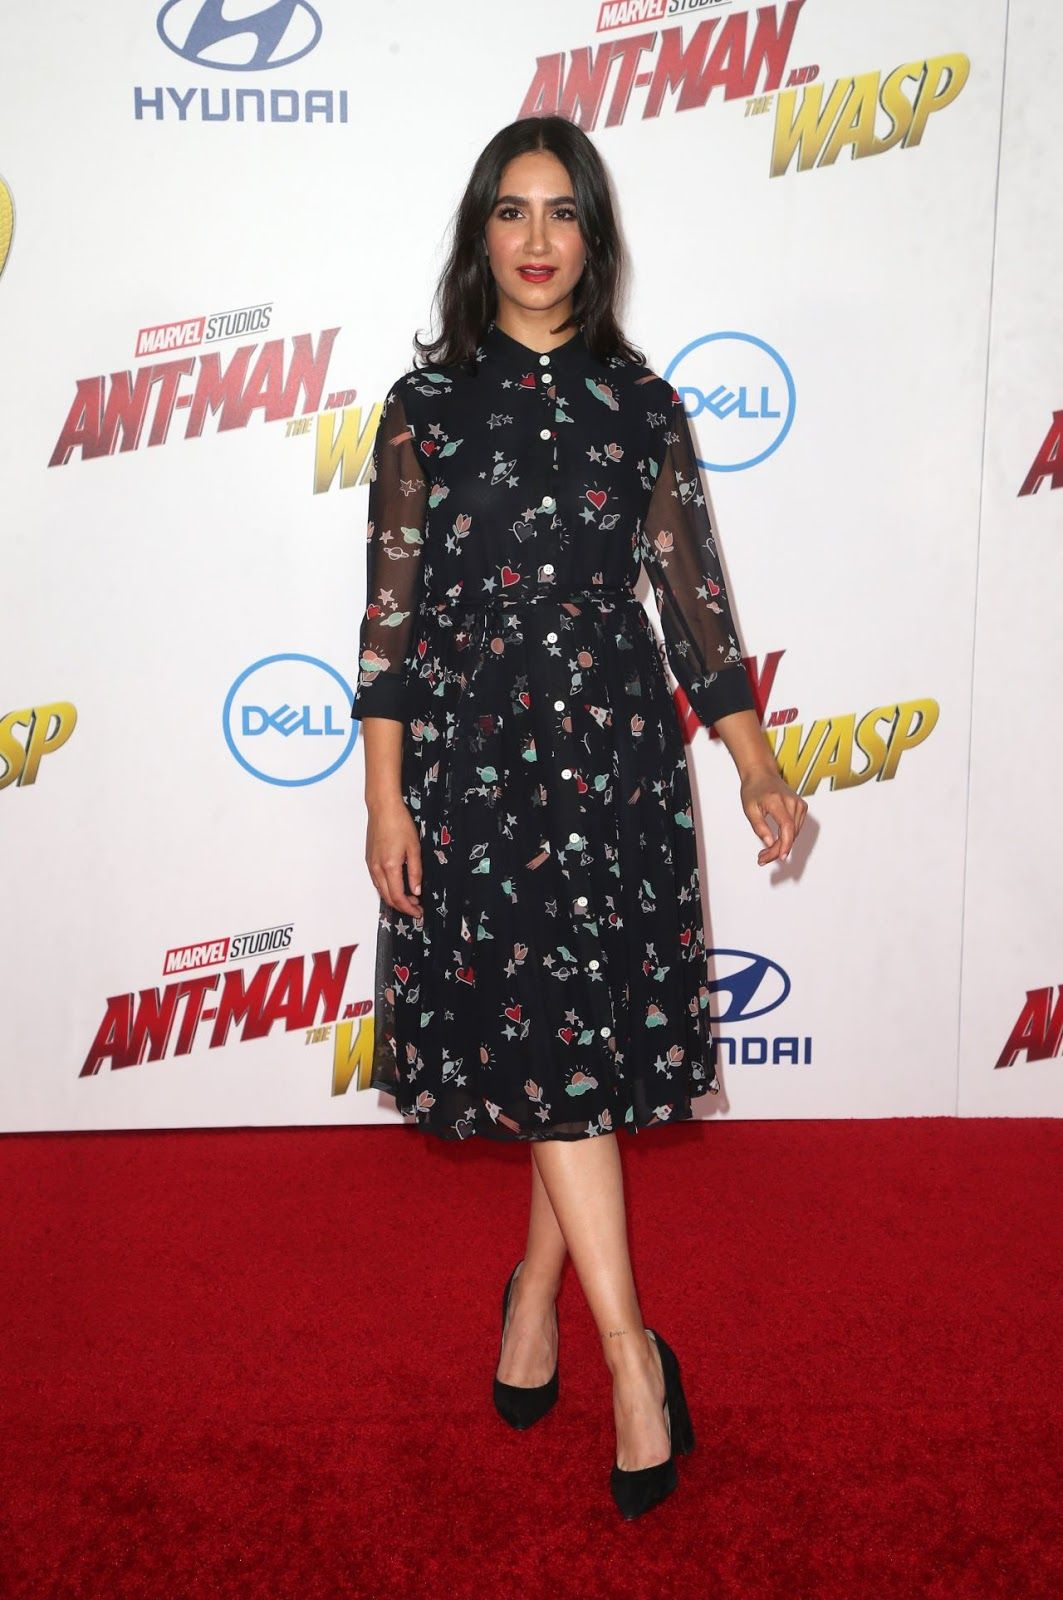 2174a8876ac0a Nikohl Boosheri Ant-Man and the Wasp Premiere in LA   Daily ...